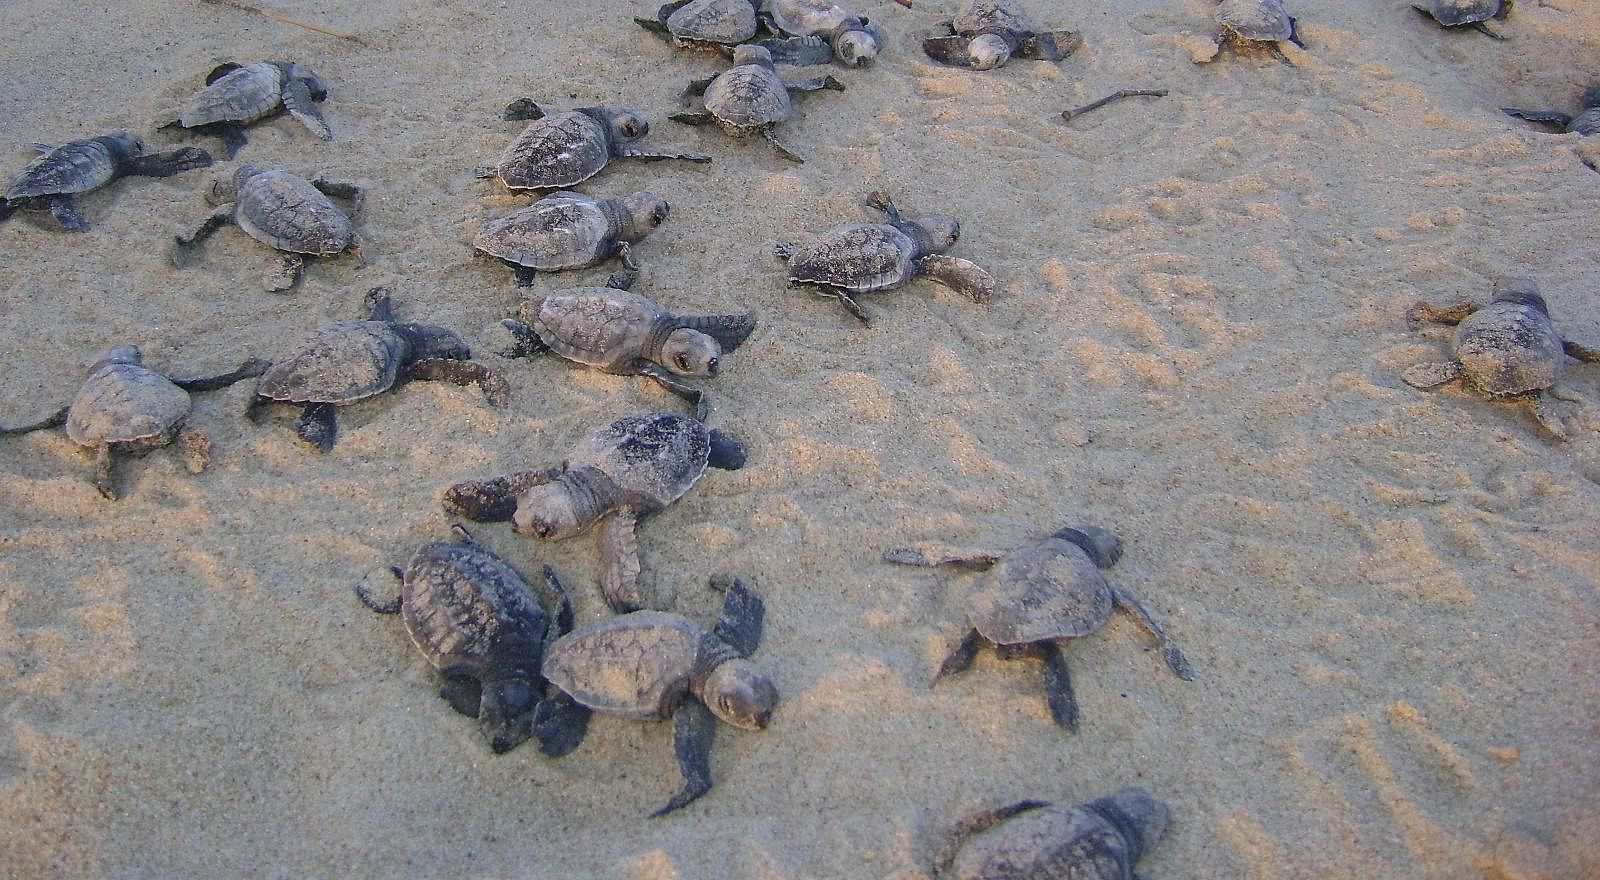 Hatchlings making a bee line for the sea waters